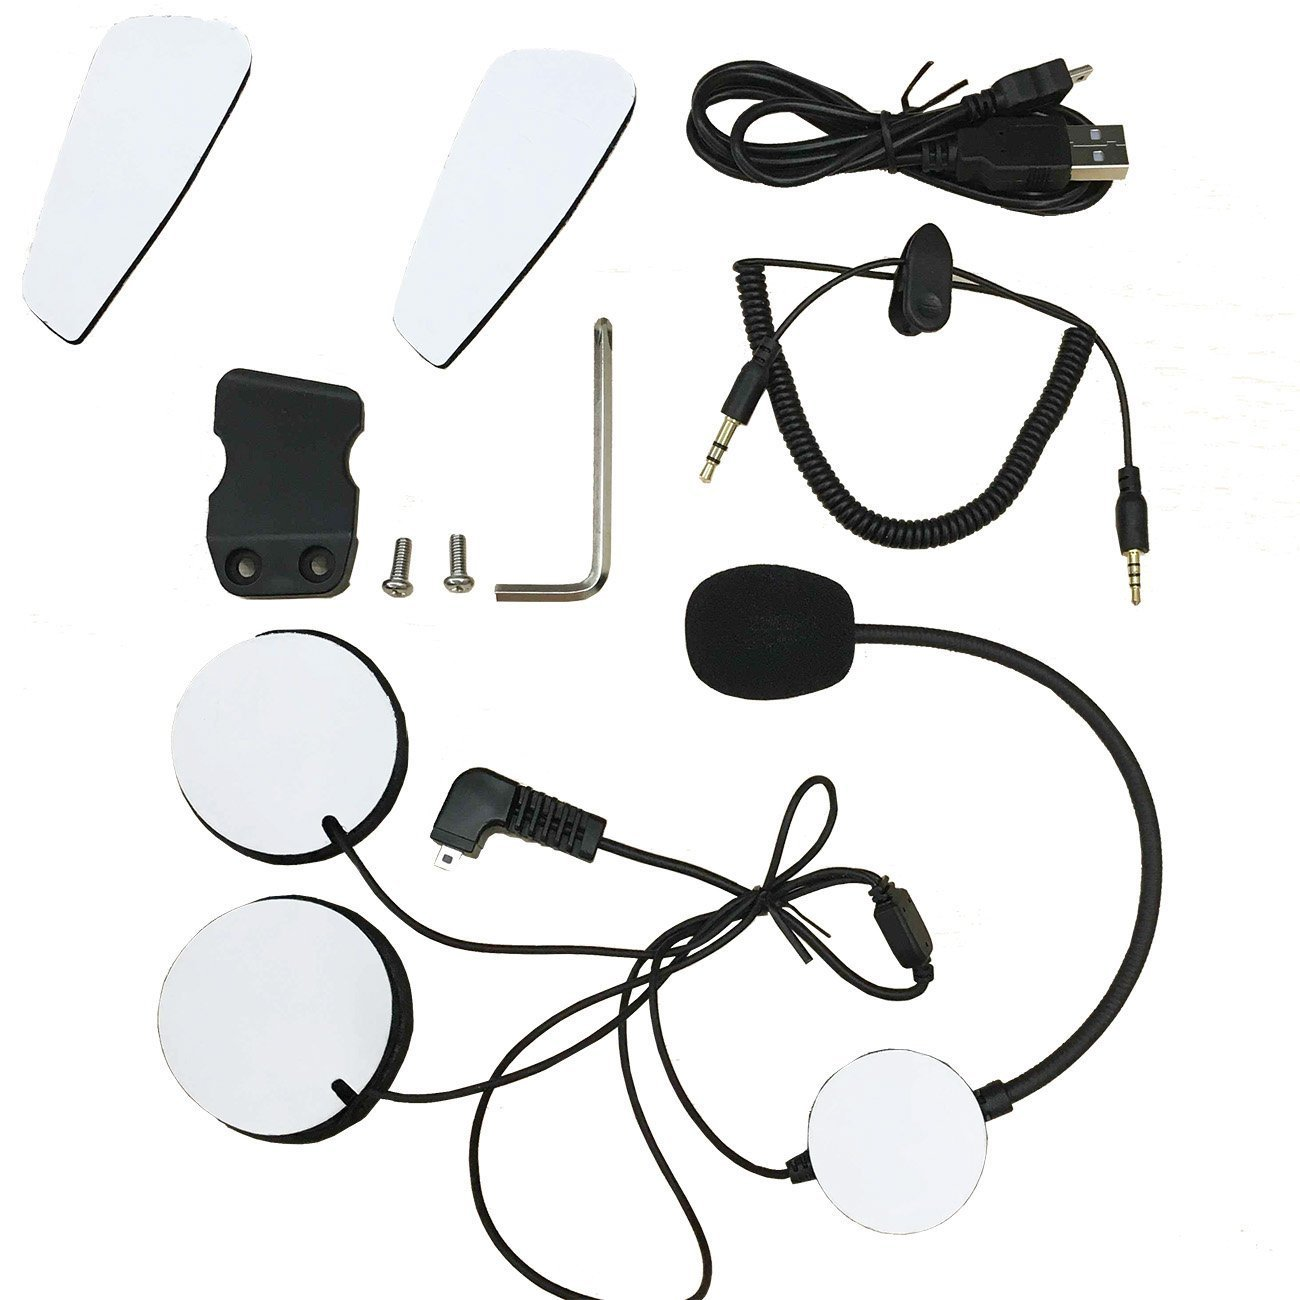 Yideng Motorcycle Intercom Accessories Earphone Microphone Audio Cable Charger Cable Mounting Clip Velcro Kits